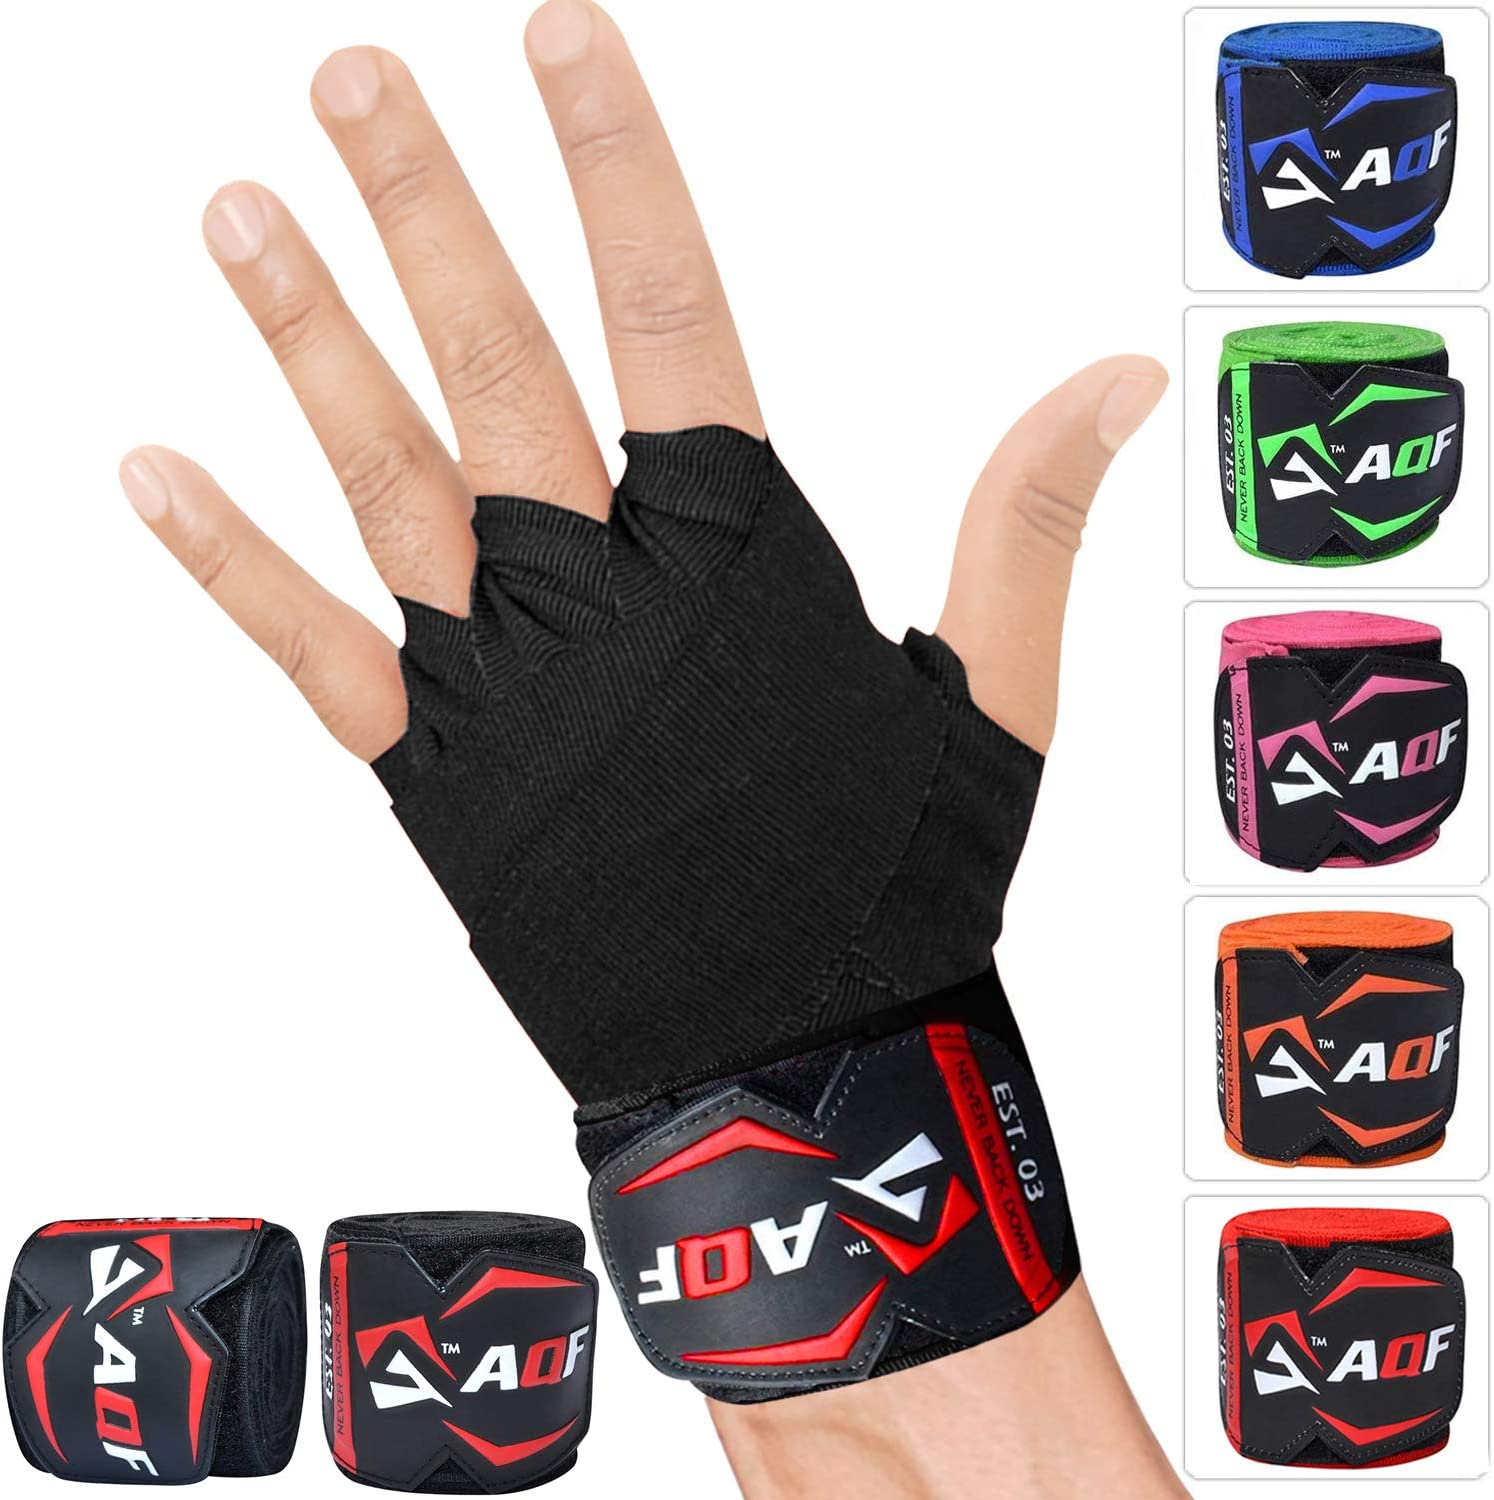 AQF Hand Wraps 4 m Inner MMA Boxing Gloves Bandages Training Muay Thai Stretch